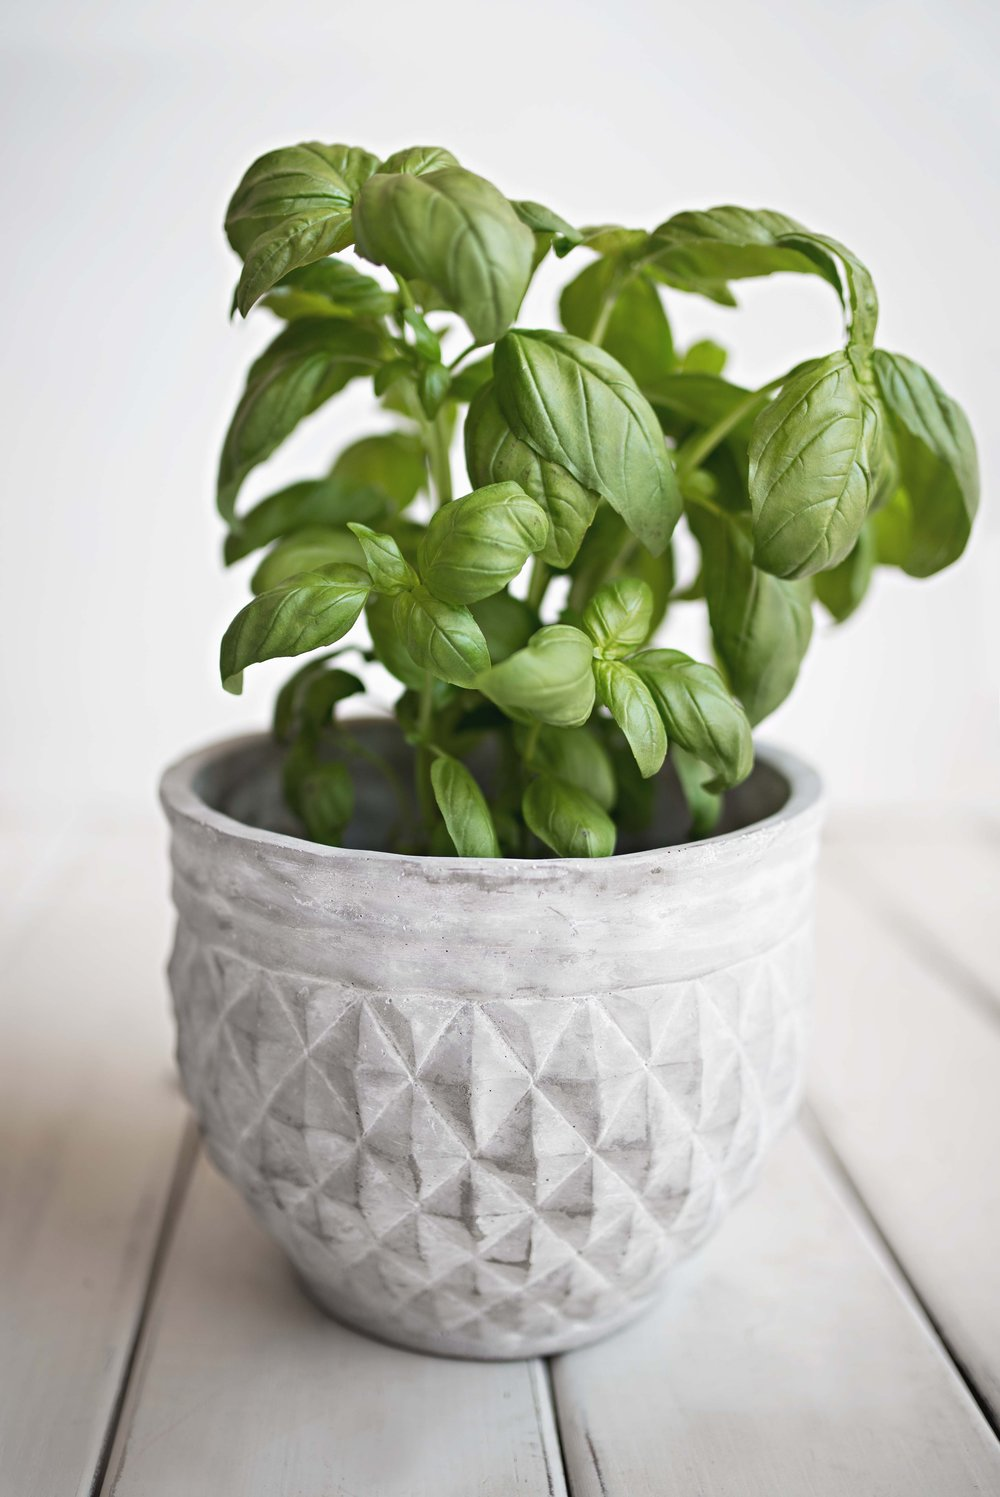 Not only is Basil tasty, it's beautiful!